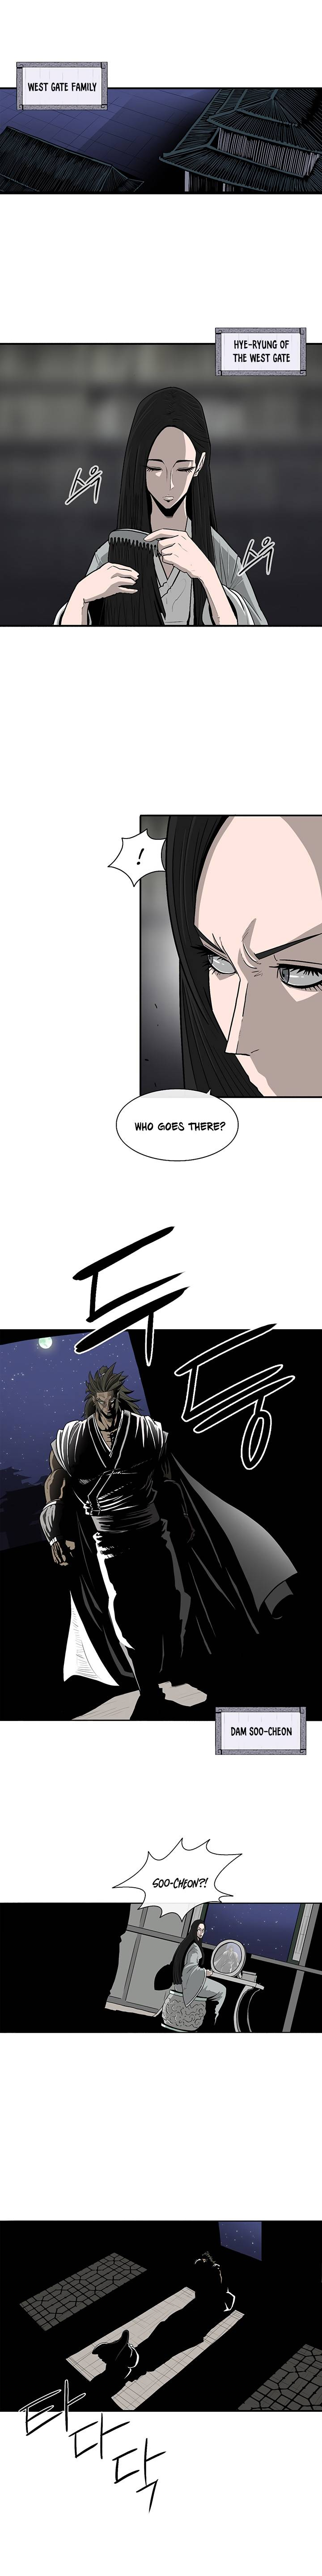 Legend Of The Northern Blade - chapter 81 - #2